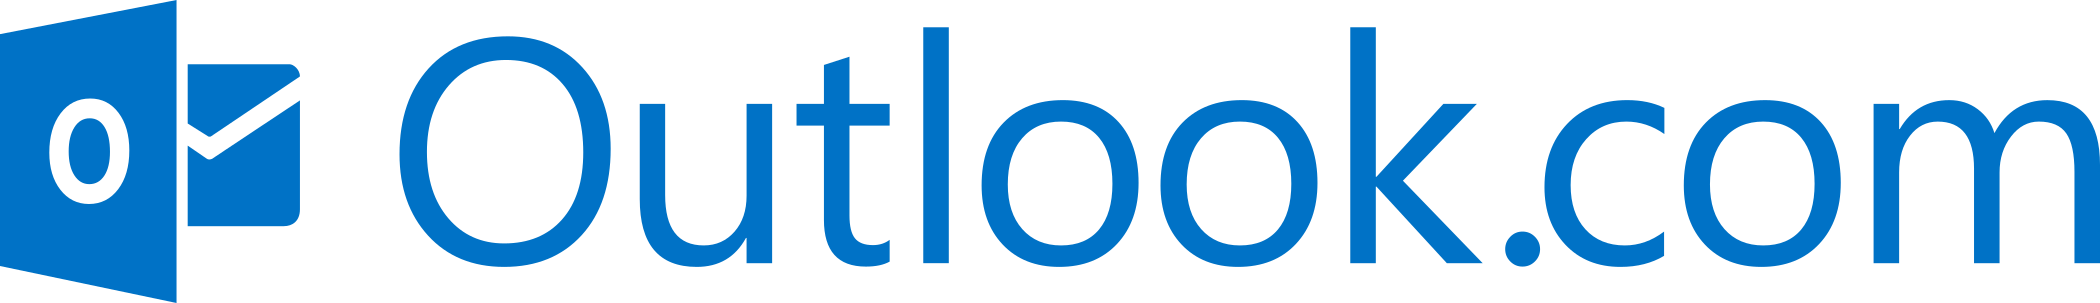 Outlook-logo-1